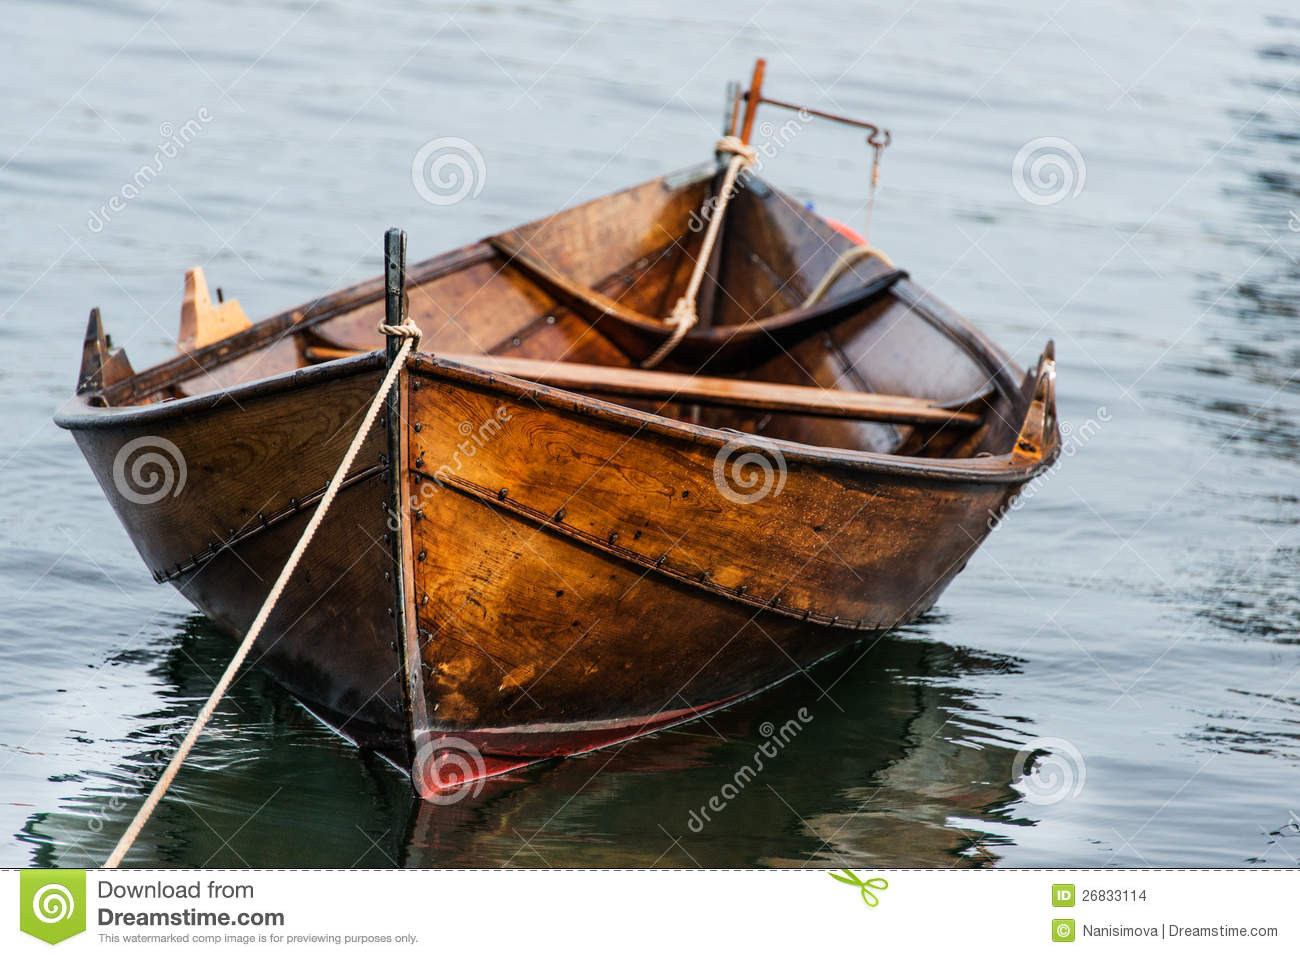 Wooden Boat On Water Stock Images - Image: 26833114